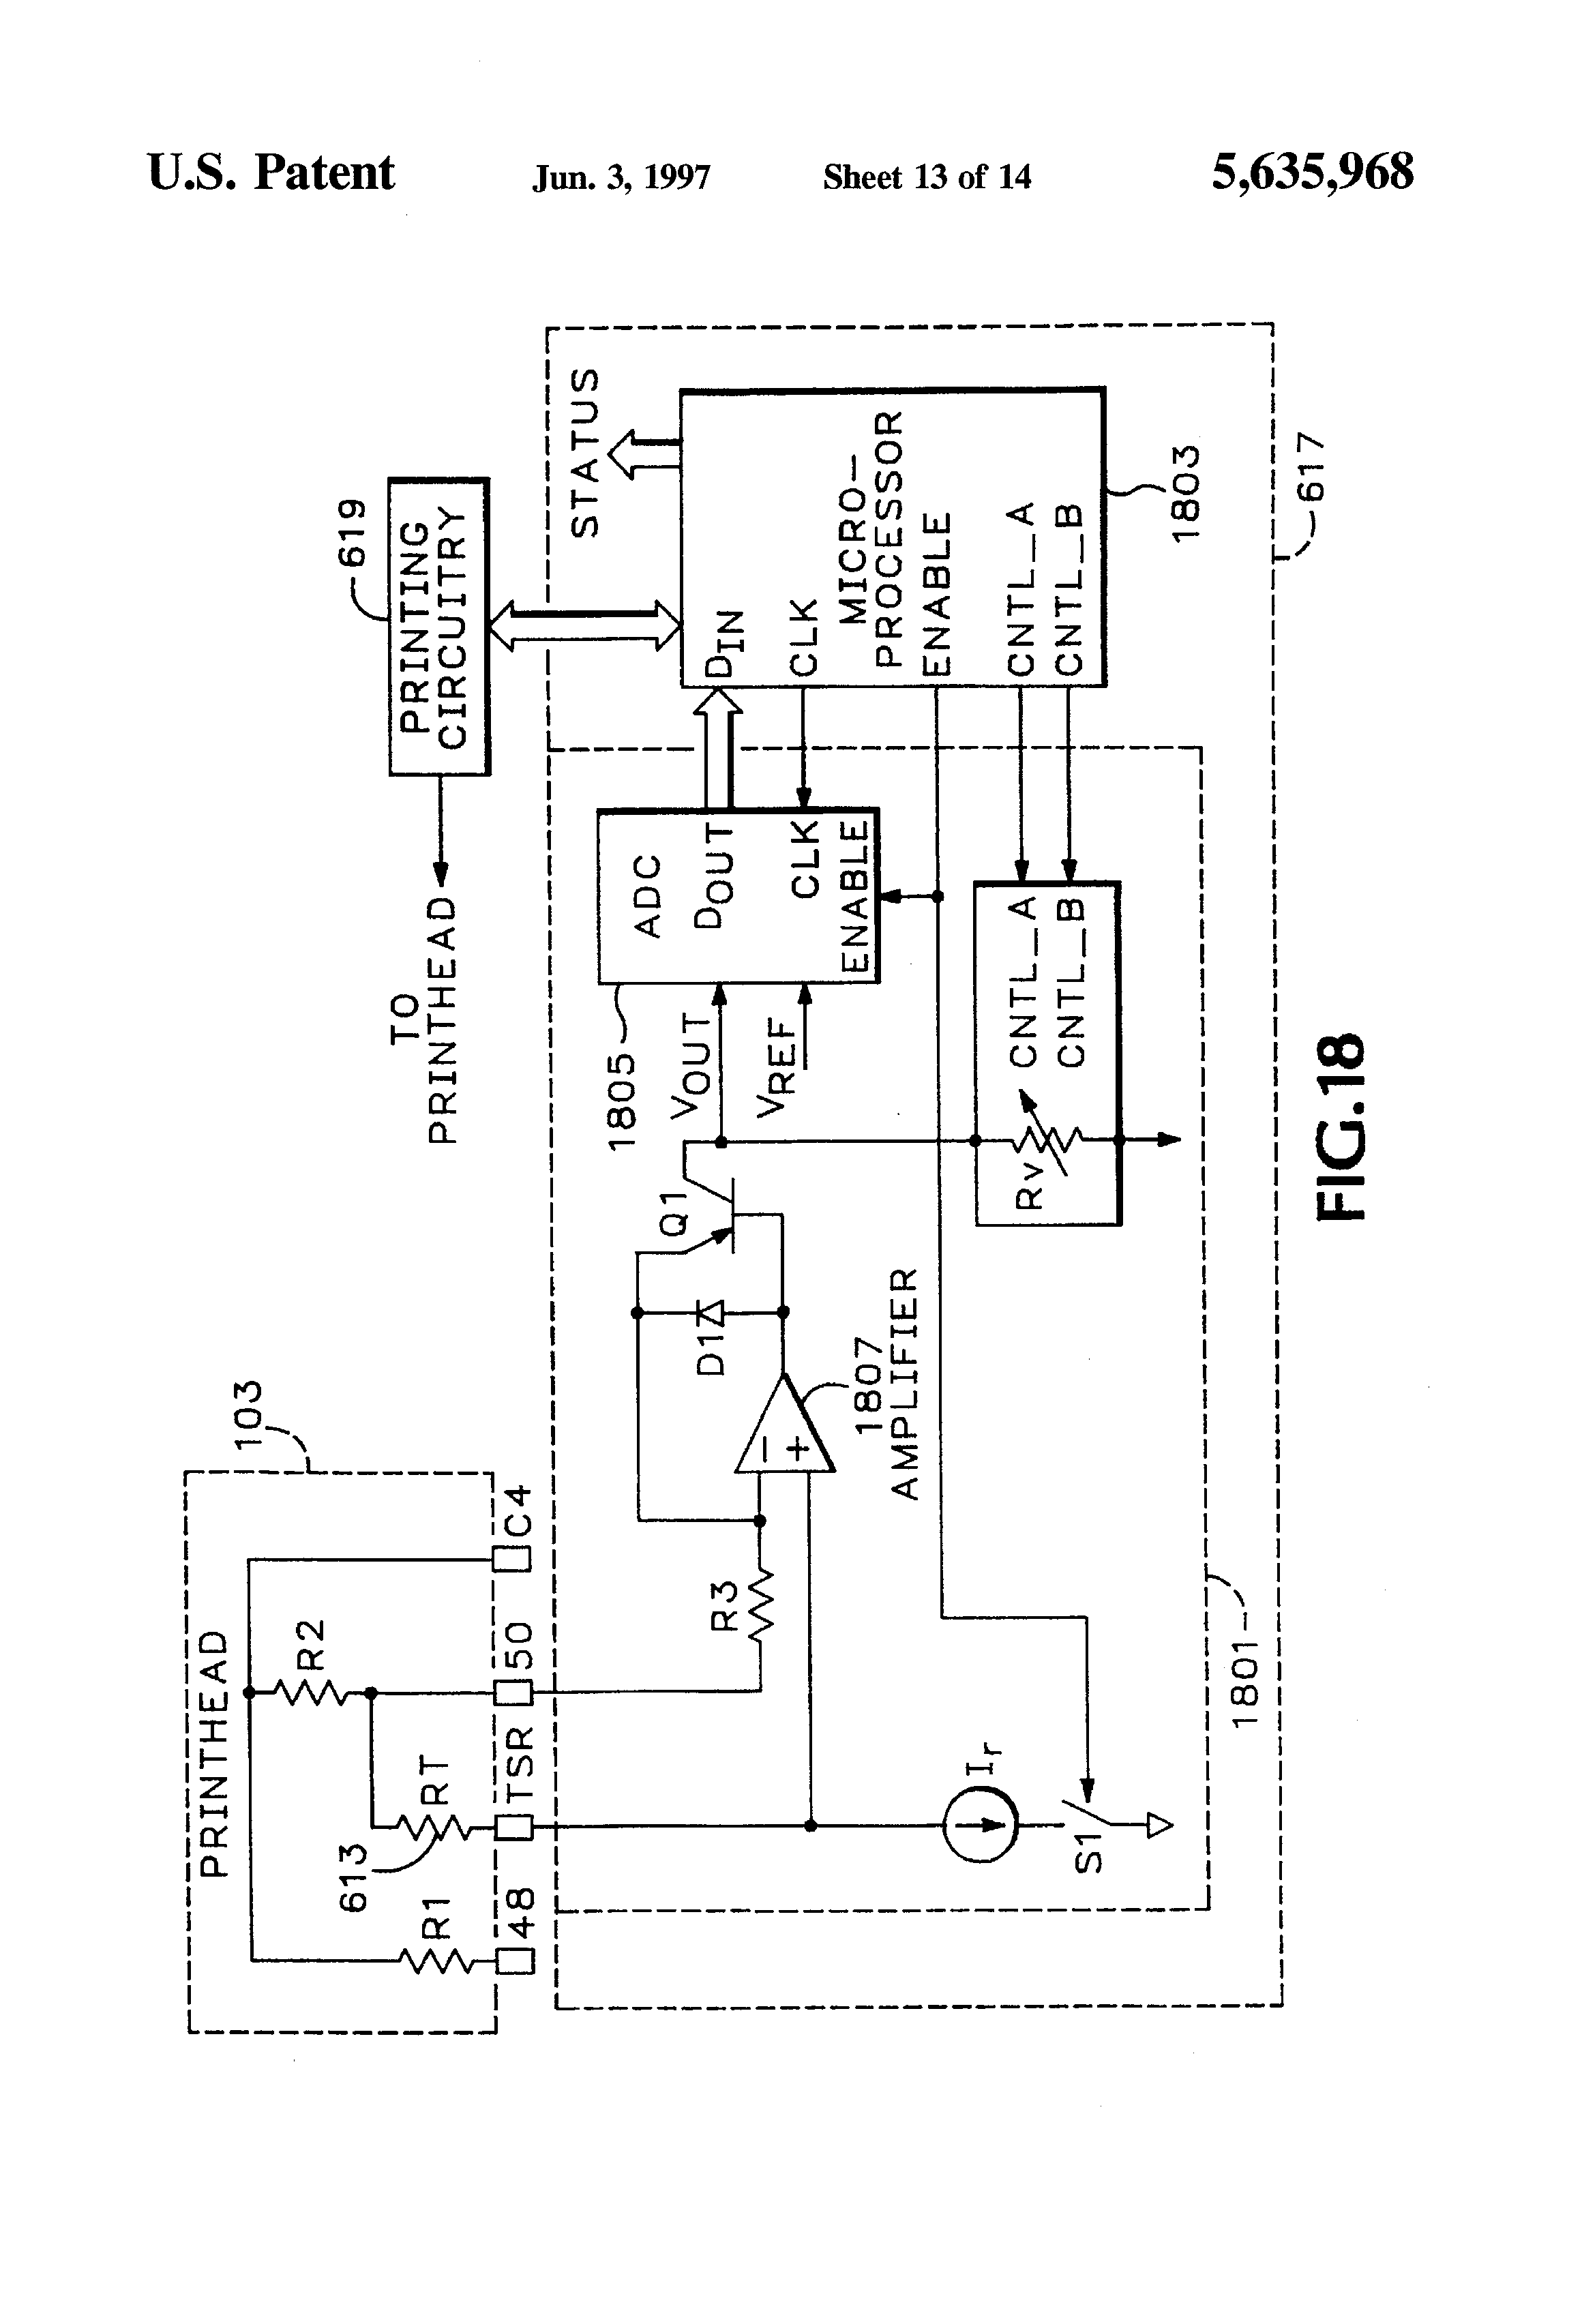 working of laser printer with diagram tape anchor chart multiplication how printers work works inkjet